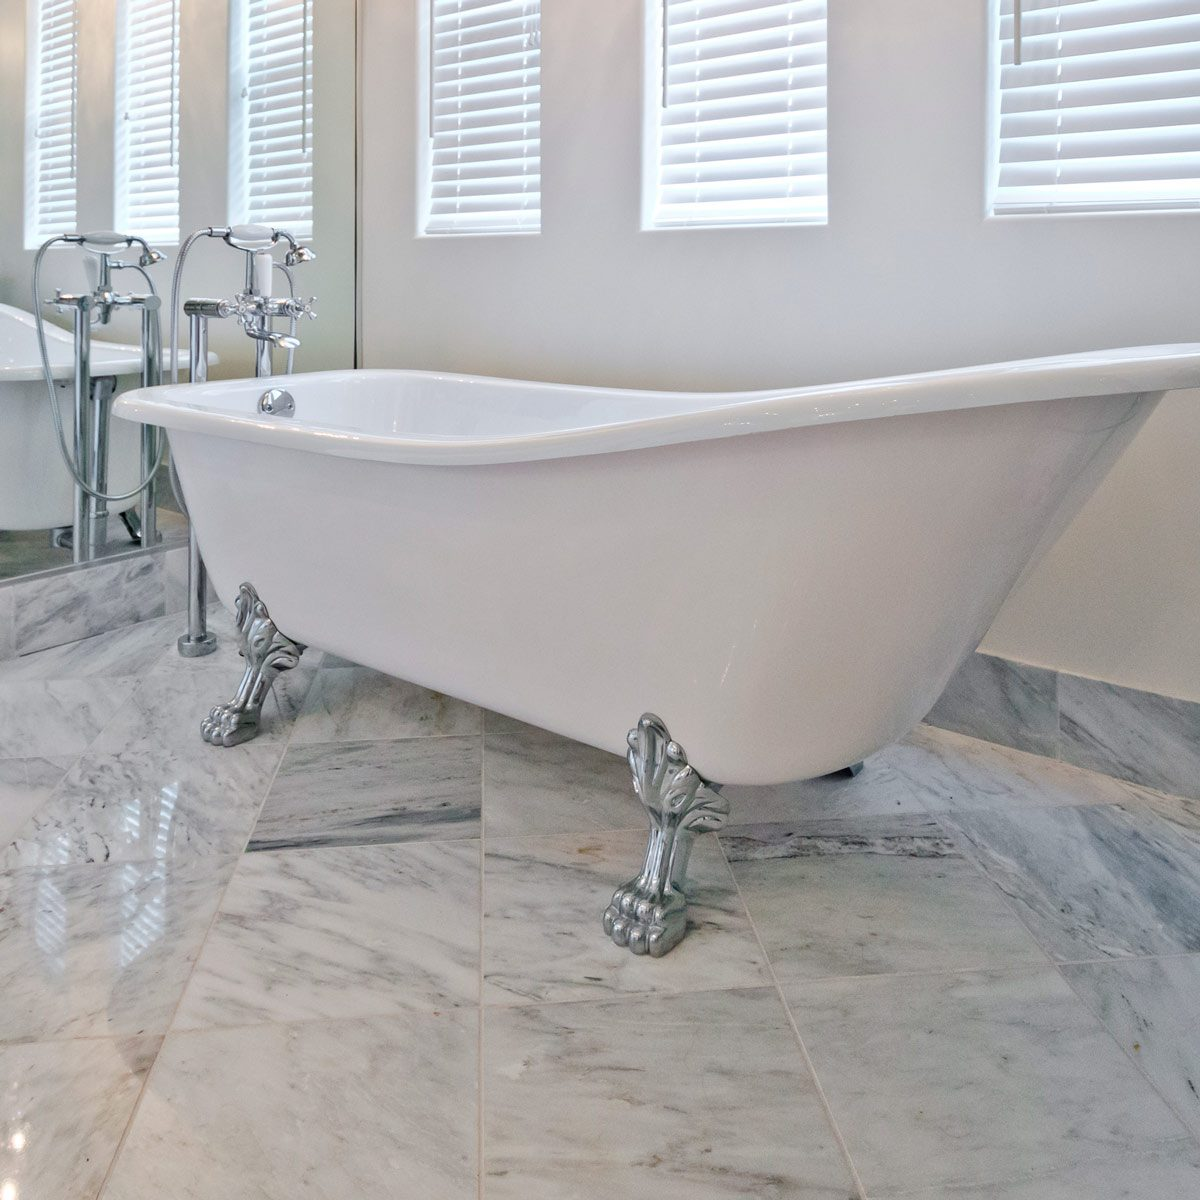 How To Clean Marble Floors The Family Handyman